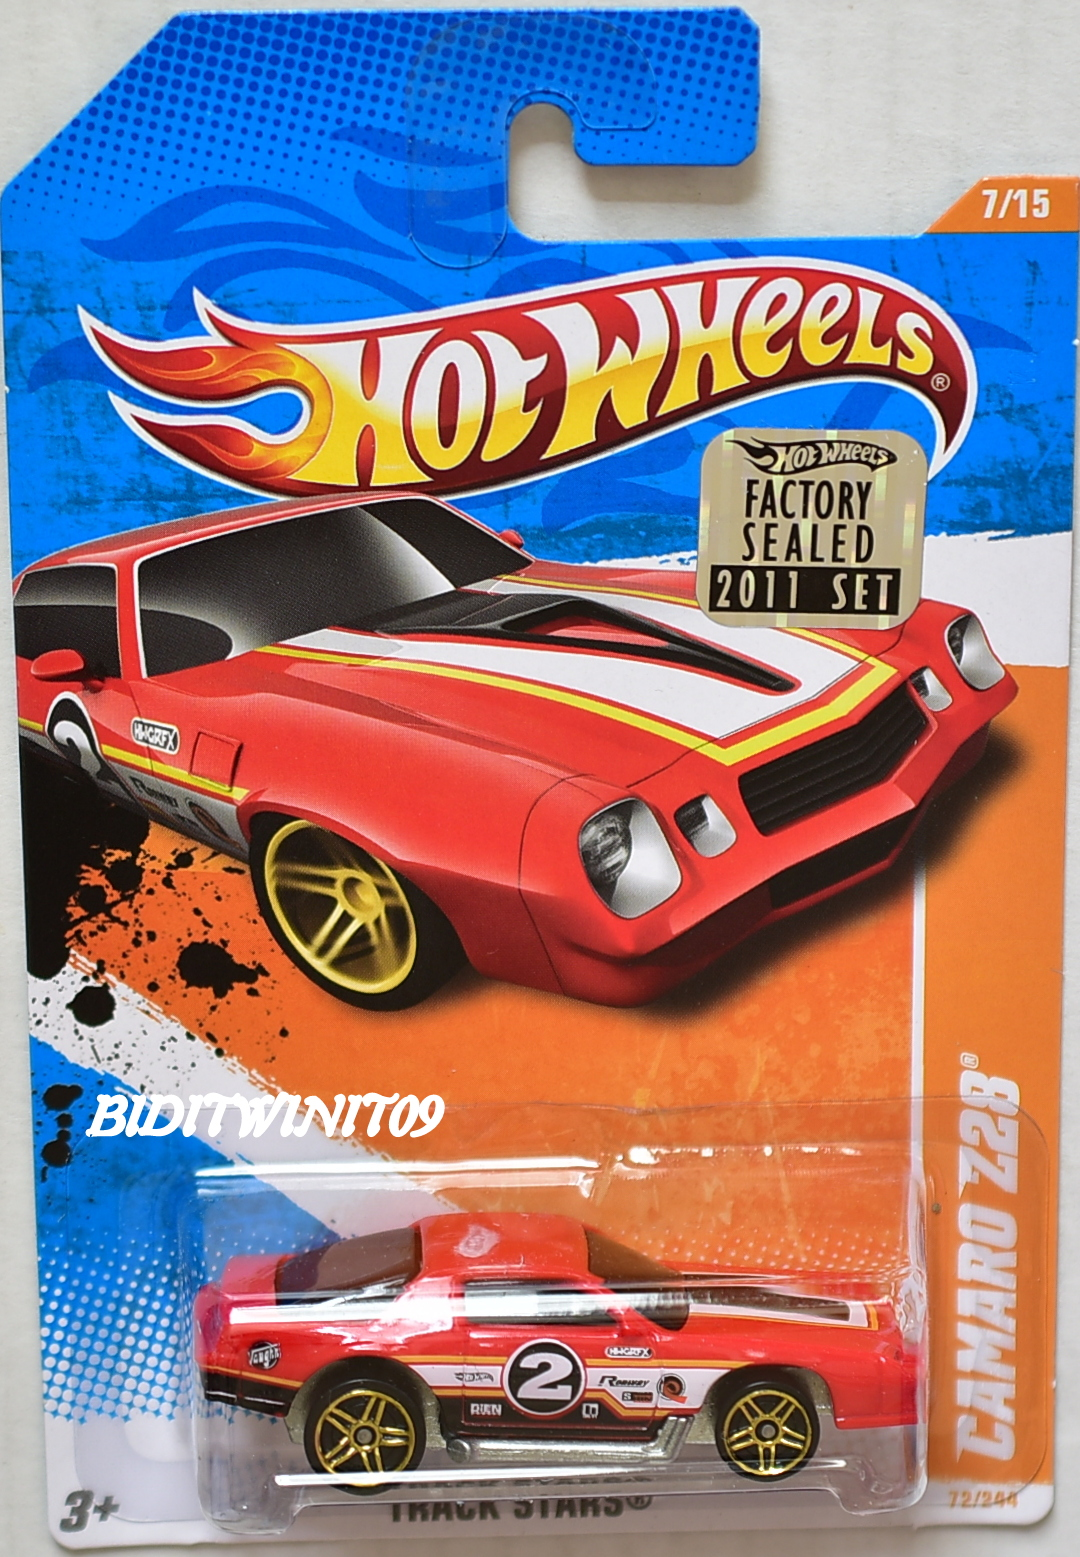 HOT WHEELS 2011 TRACK STARS CAMARO Z28 #7/15 RED FACTORY SEALED